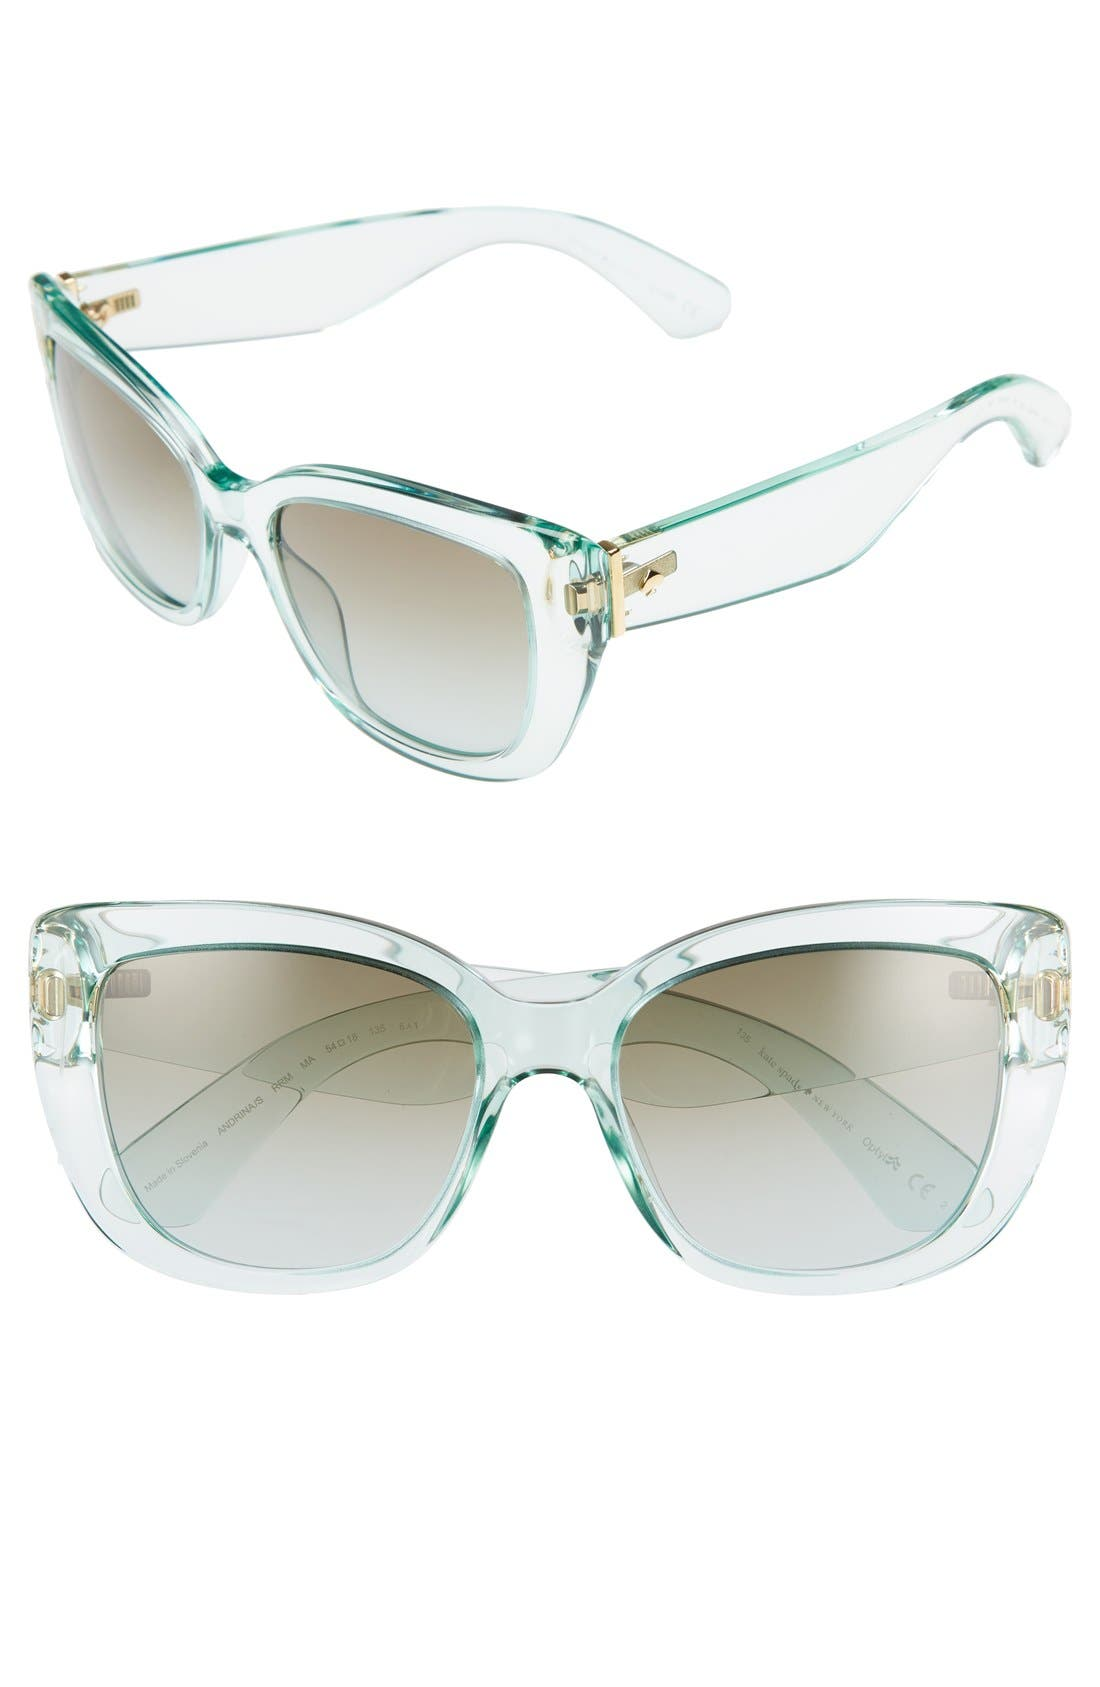 Main Image - kate spade new york 'andris' 54mm sunglasses